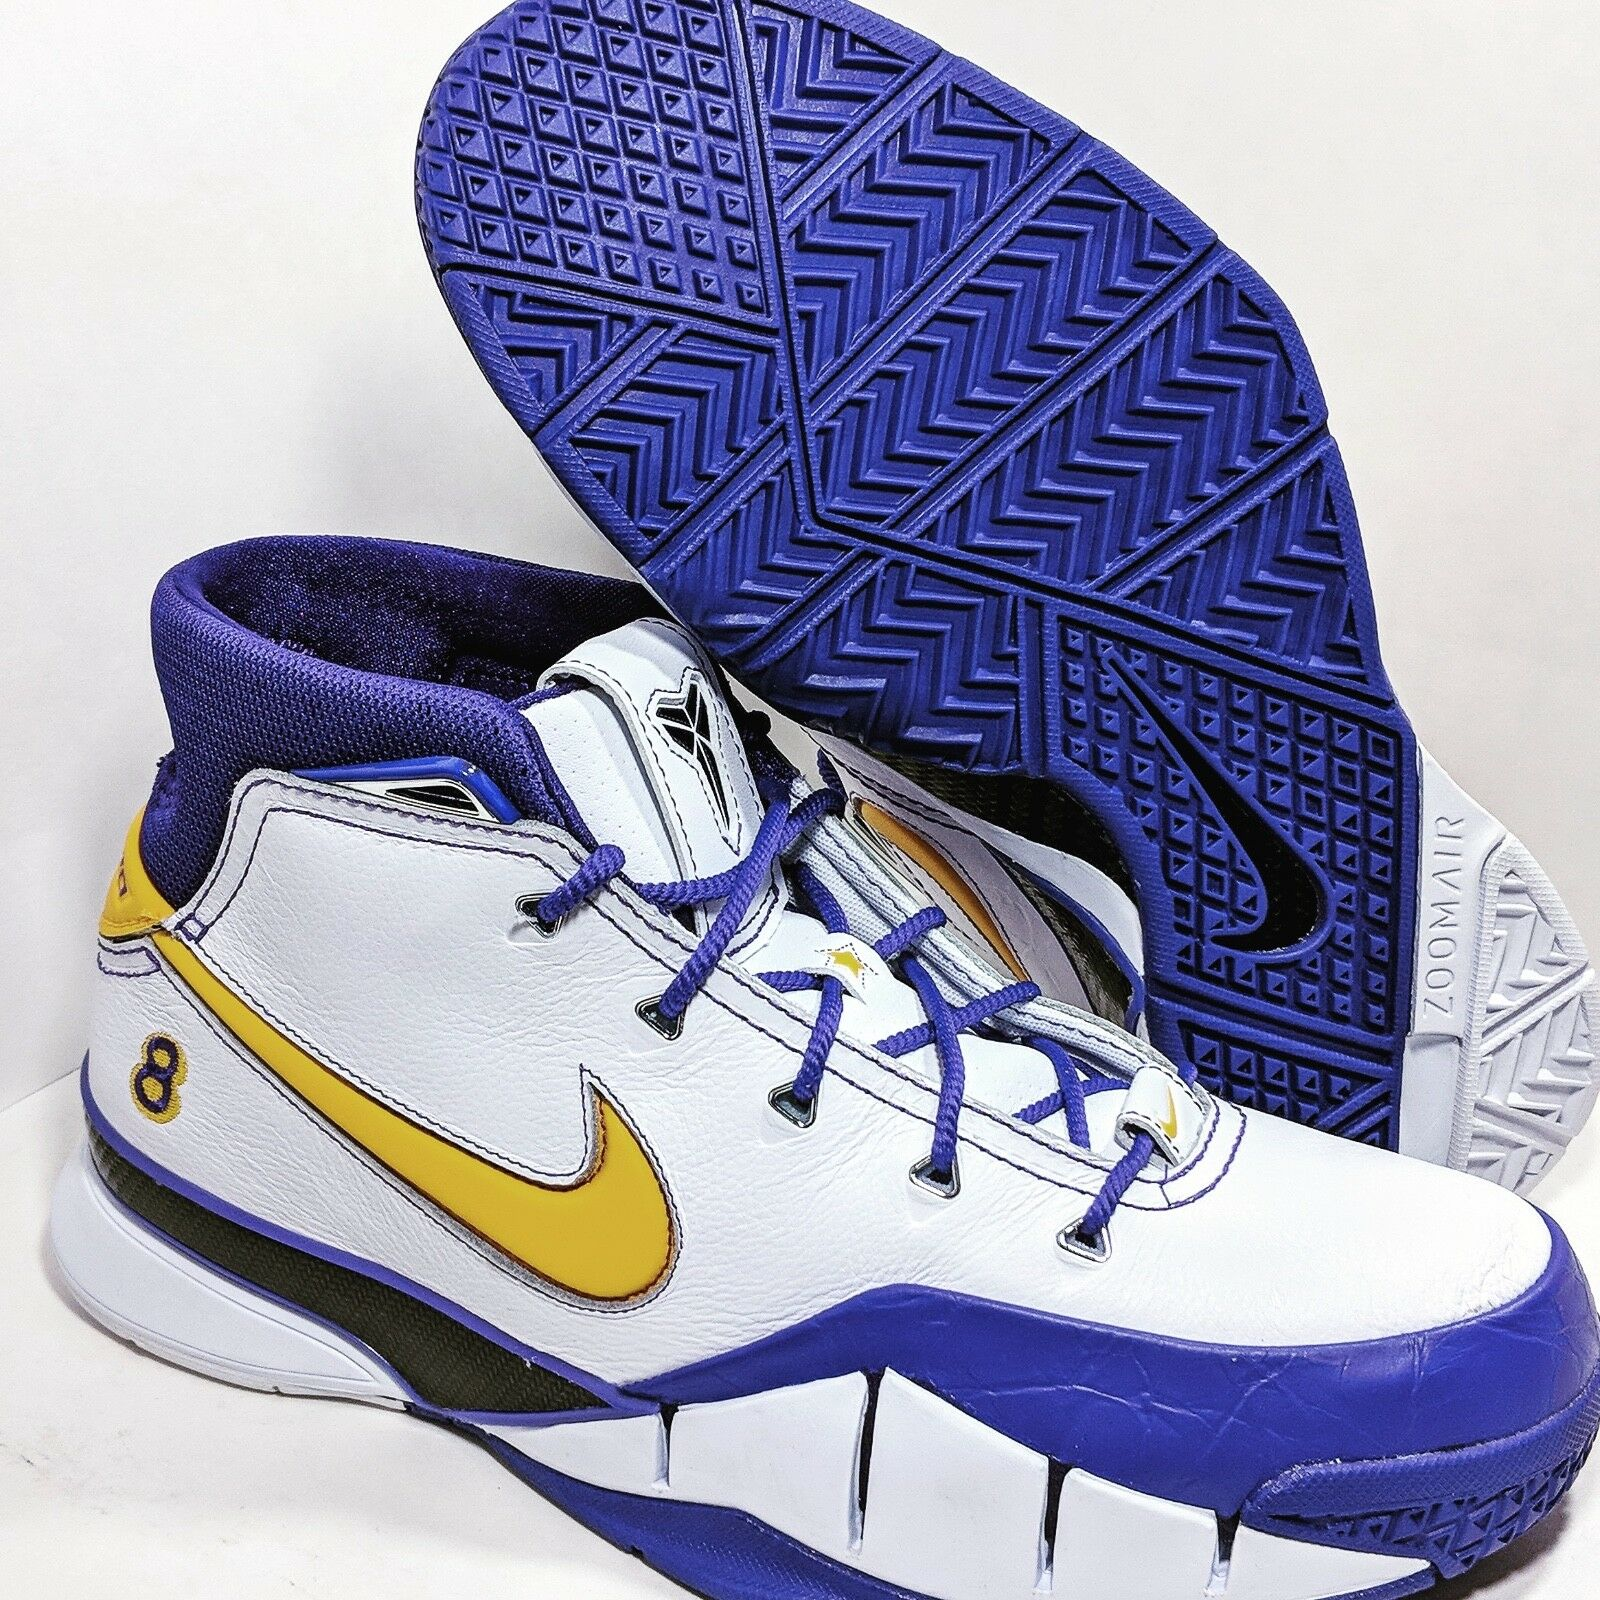 Nike Kobe Protro 1 Kobe 1 NEW Close Out Final Seconds Sz 10 AQ2728 New shoes for men and women, limited time discount